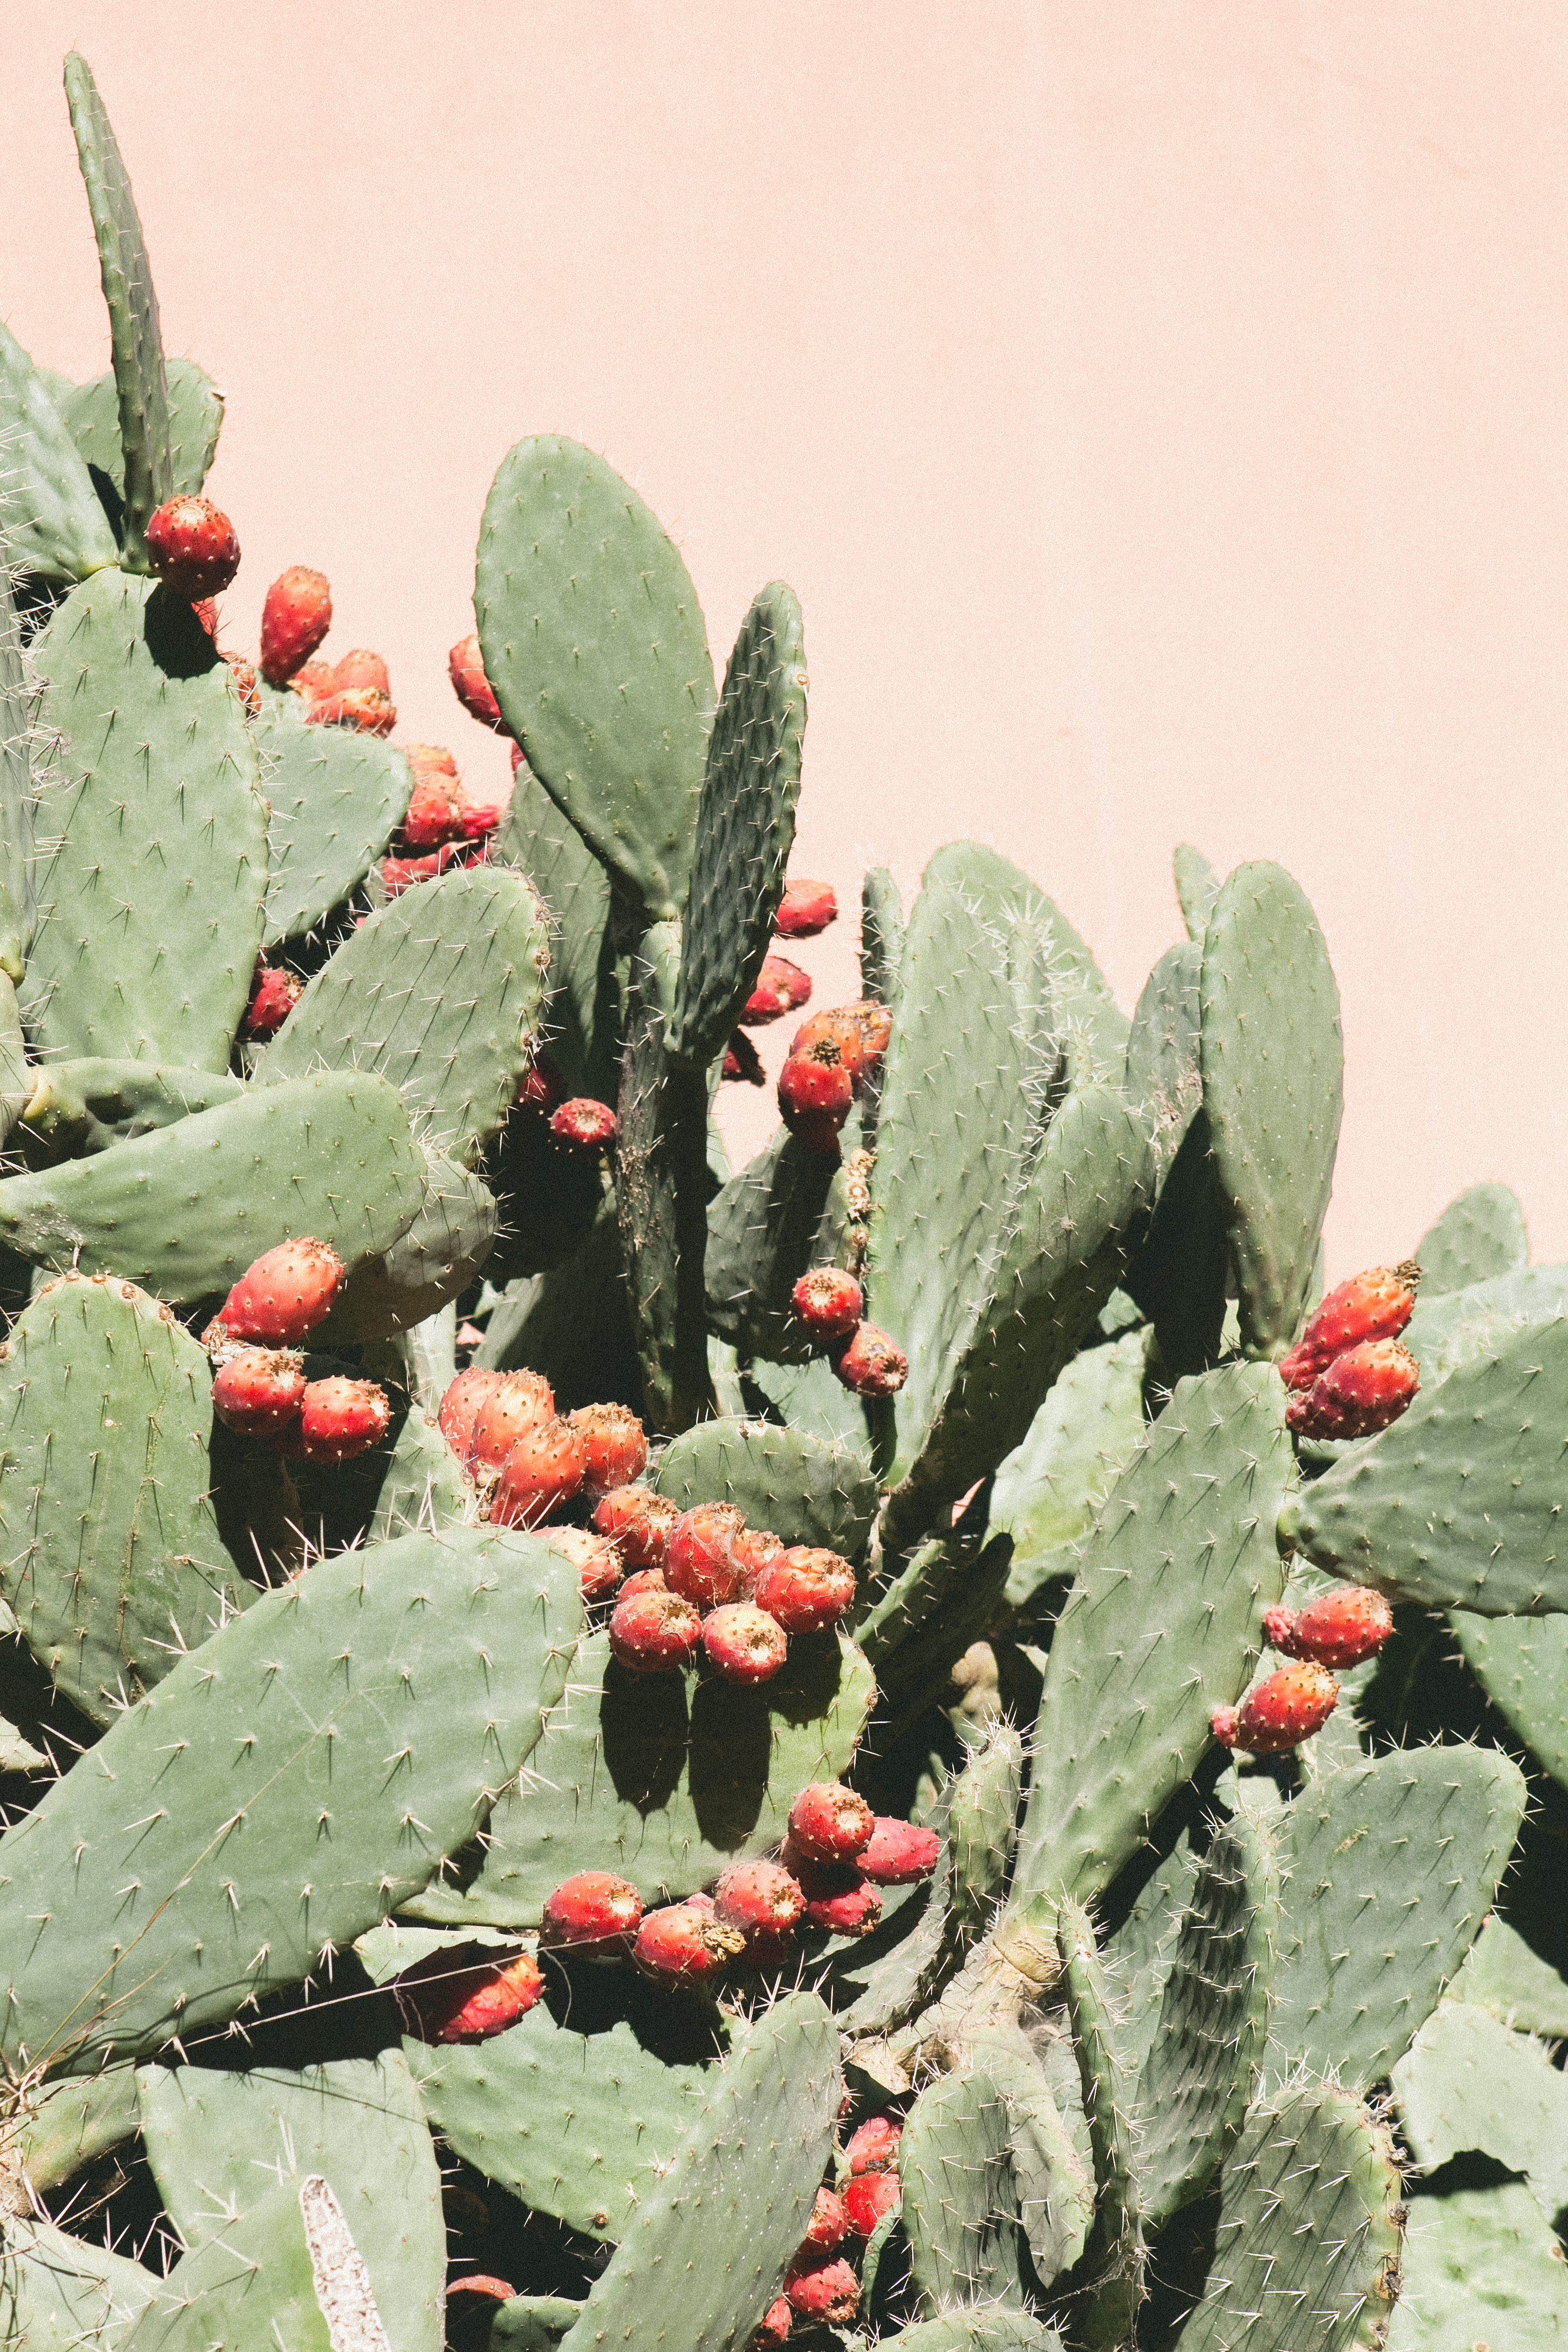 Cactus Extract Is the New Skincare Trend You Should Be Trying Right Now